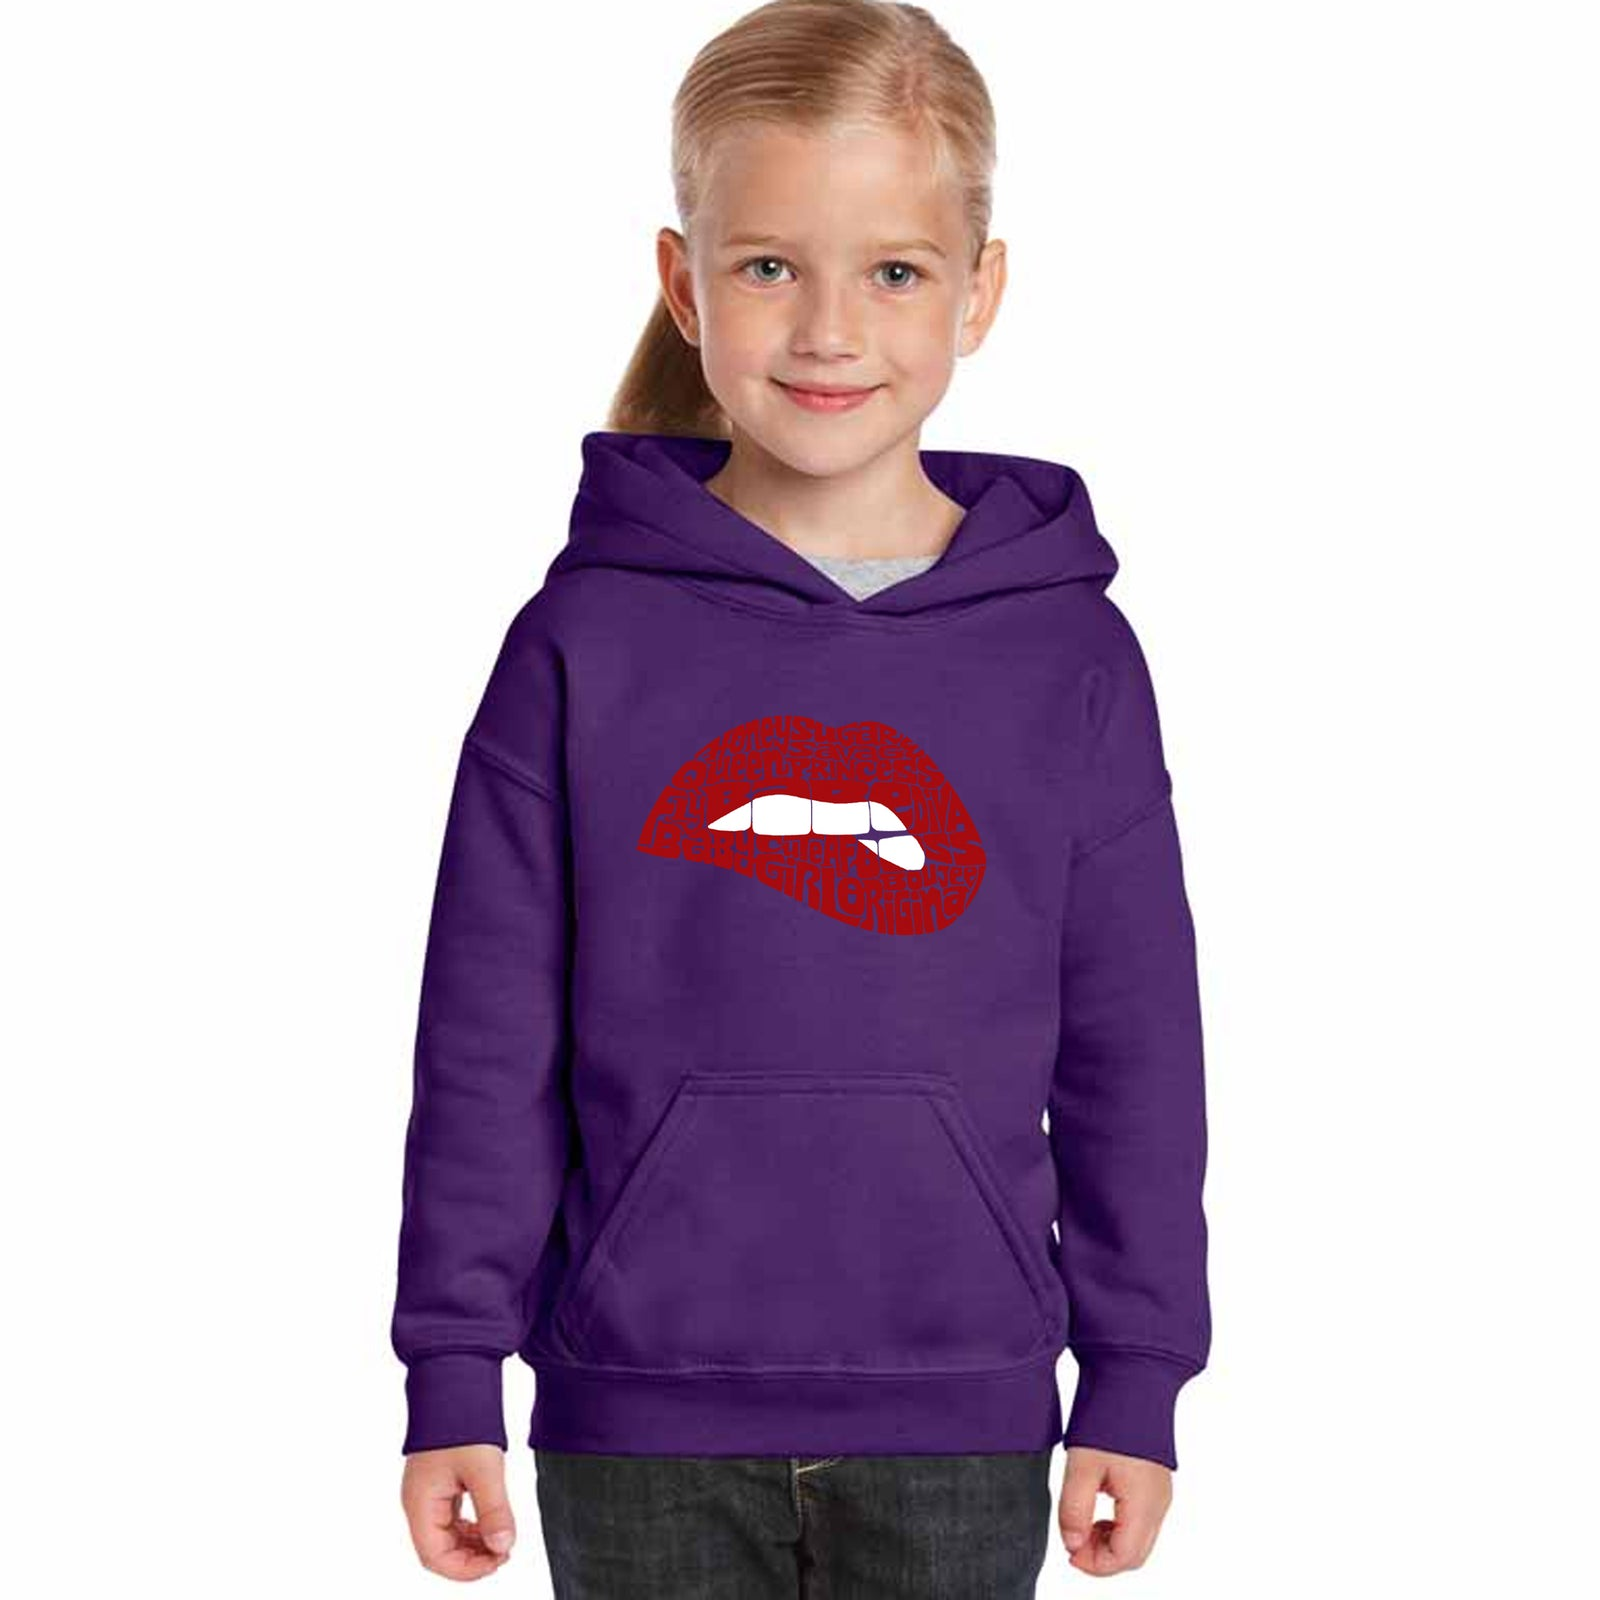 Girl's Word Art Hooded Sweatshirt - Savage Lips